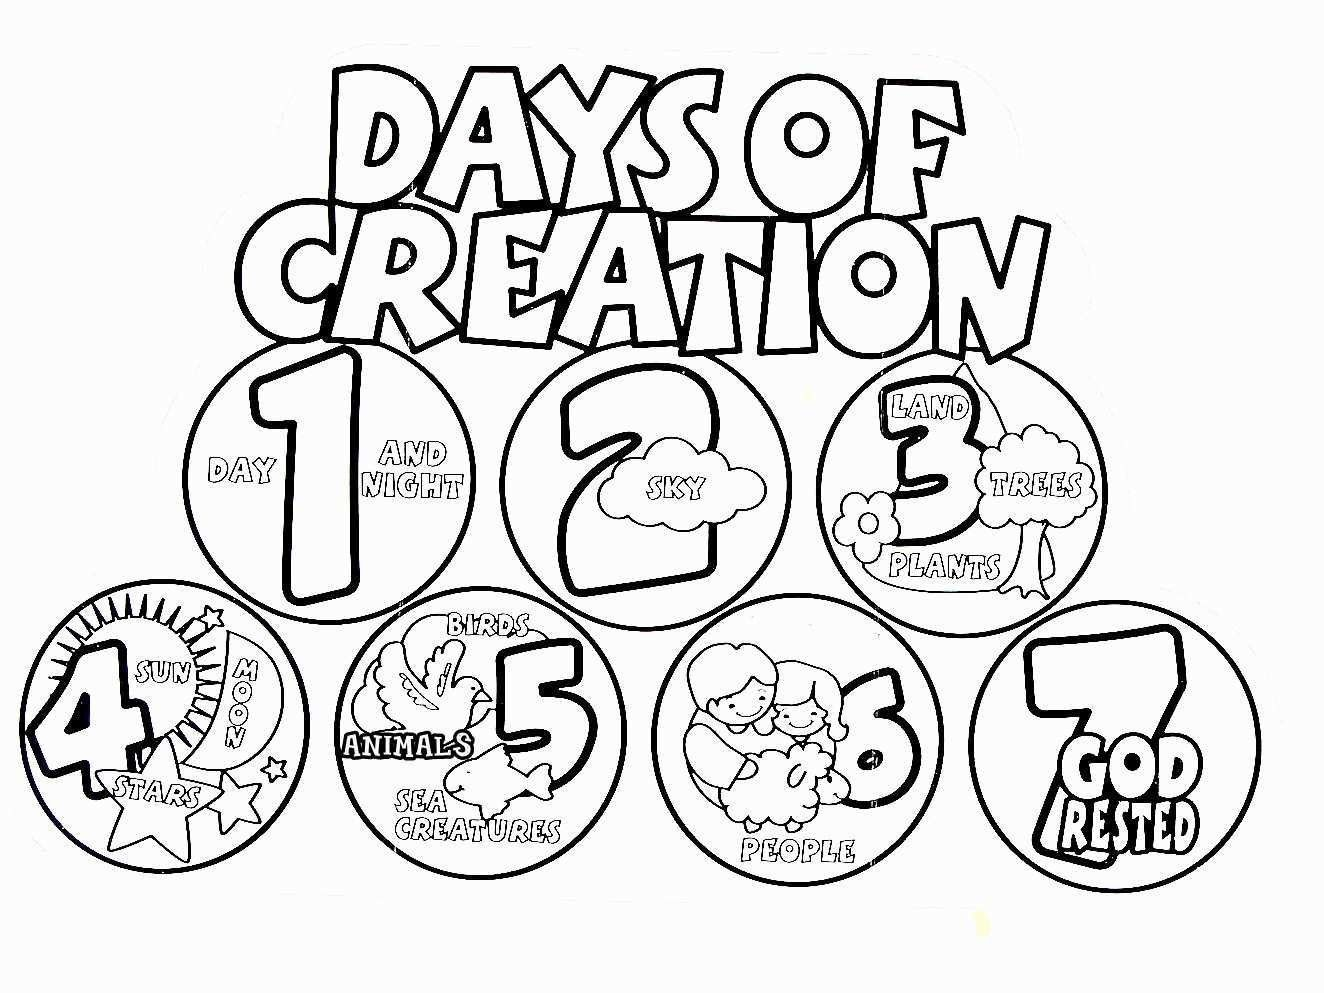 Days Of Creation Coloring Pages Fresh 7 Days Creation Drawing At Paintingvalley Creation Coloring Pages Sunday School Coloring Pages Days Of Creation